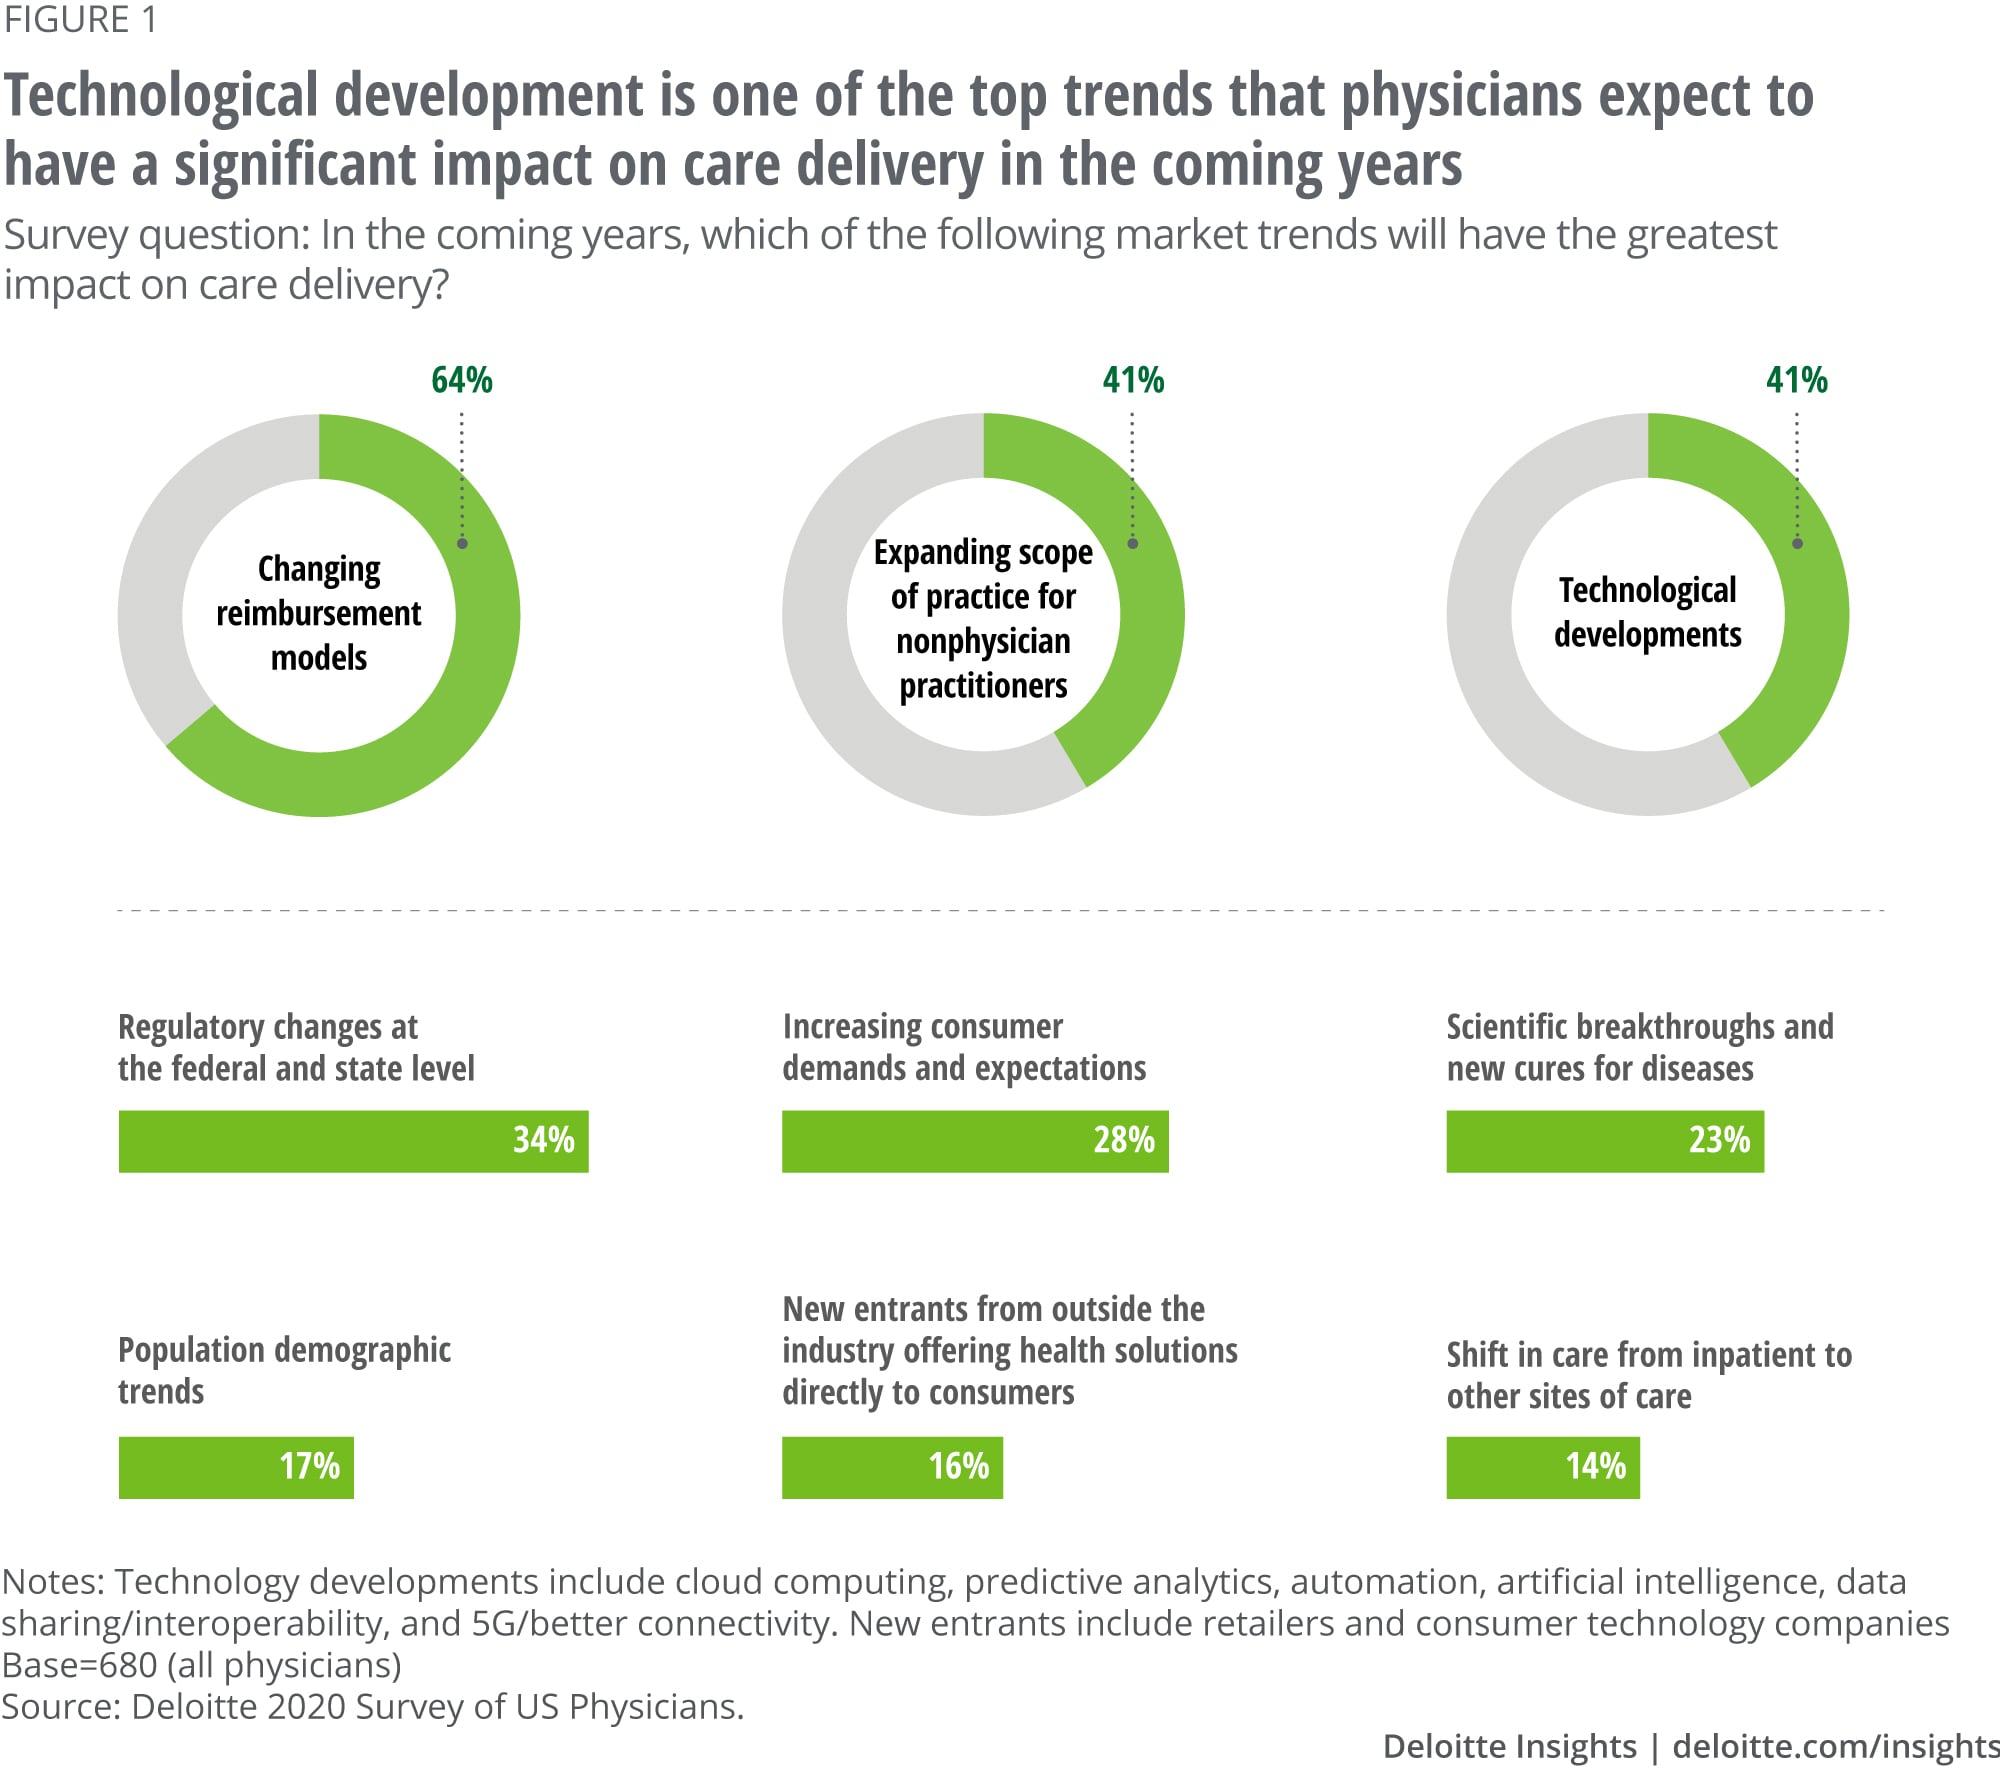 Technological development is one of the top trends that physicians expect to have a significant impact on care delivery in the coming years